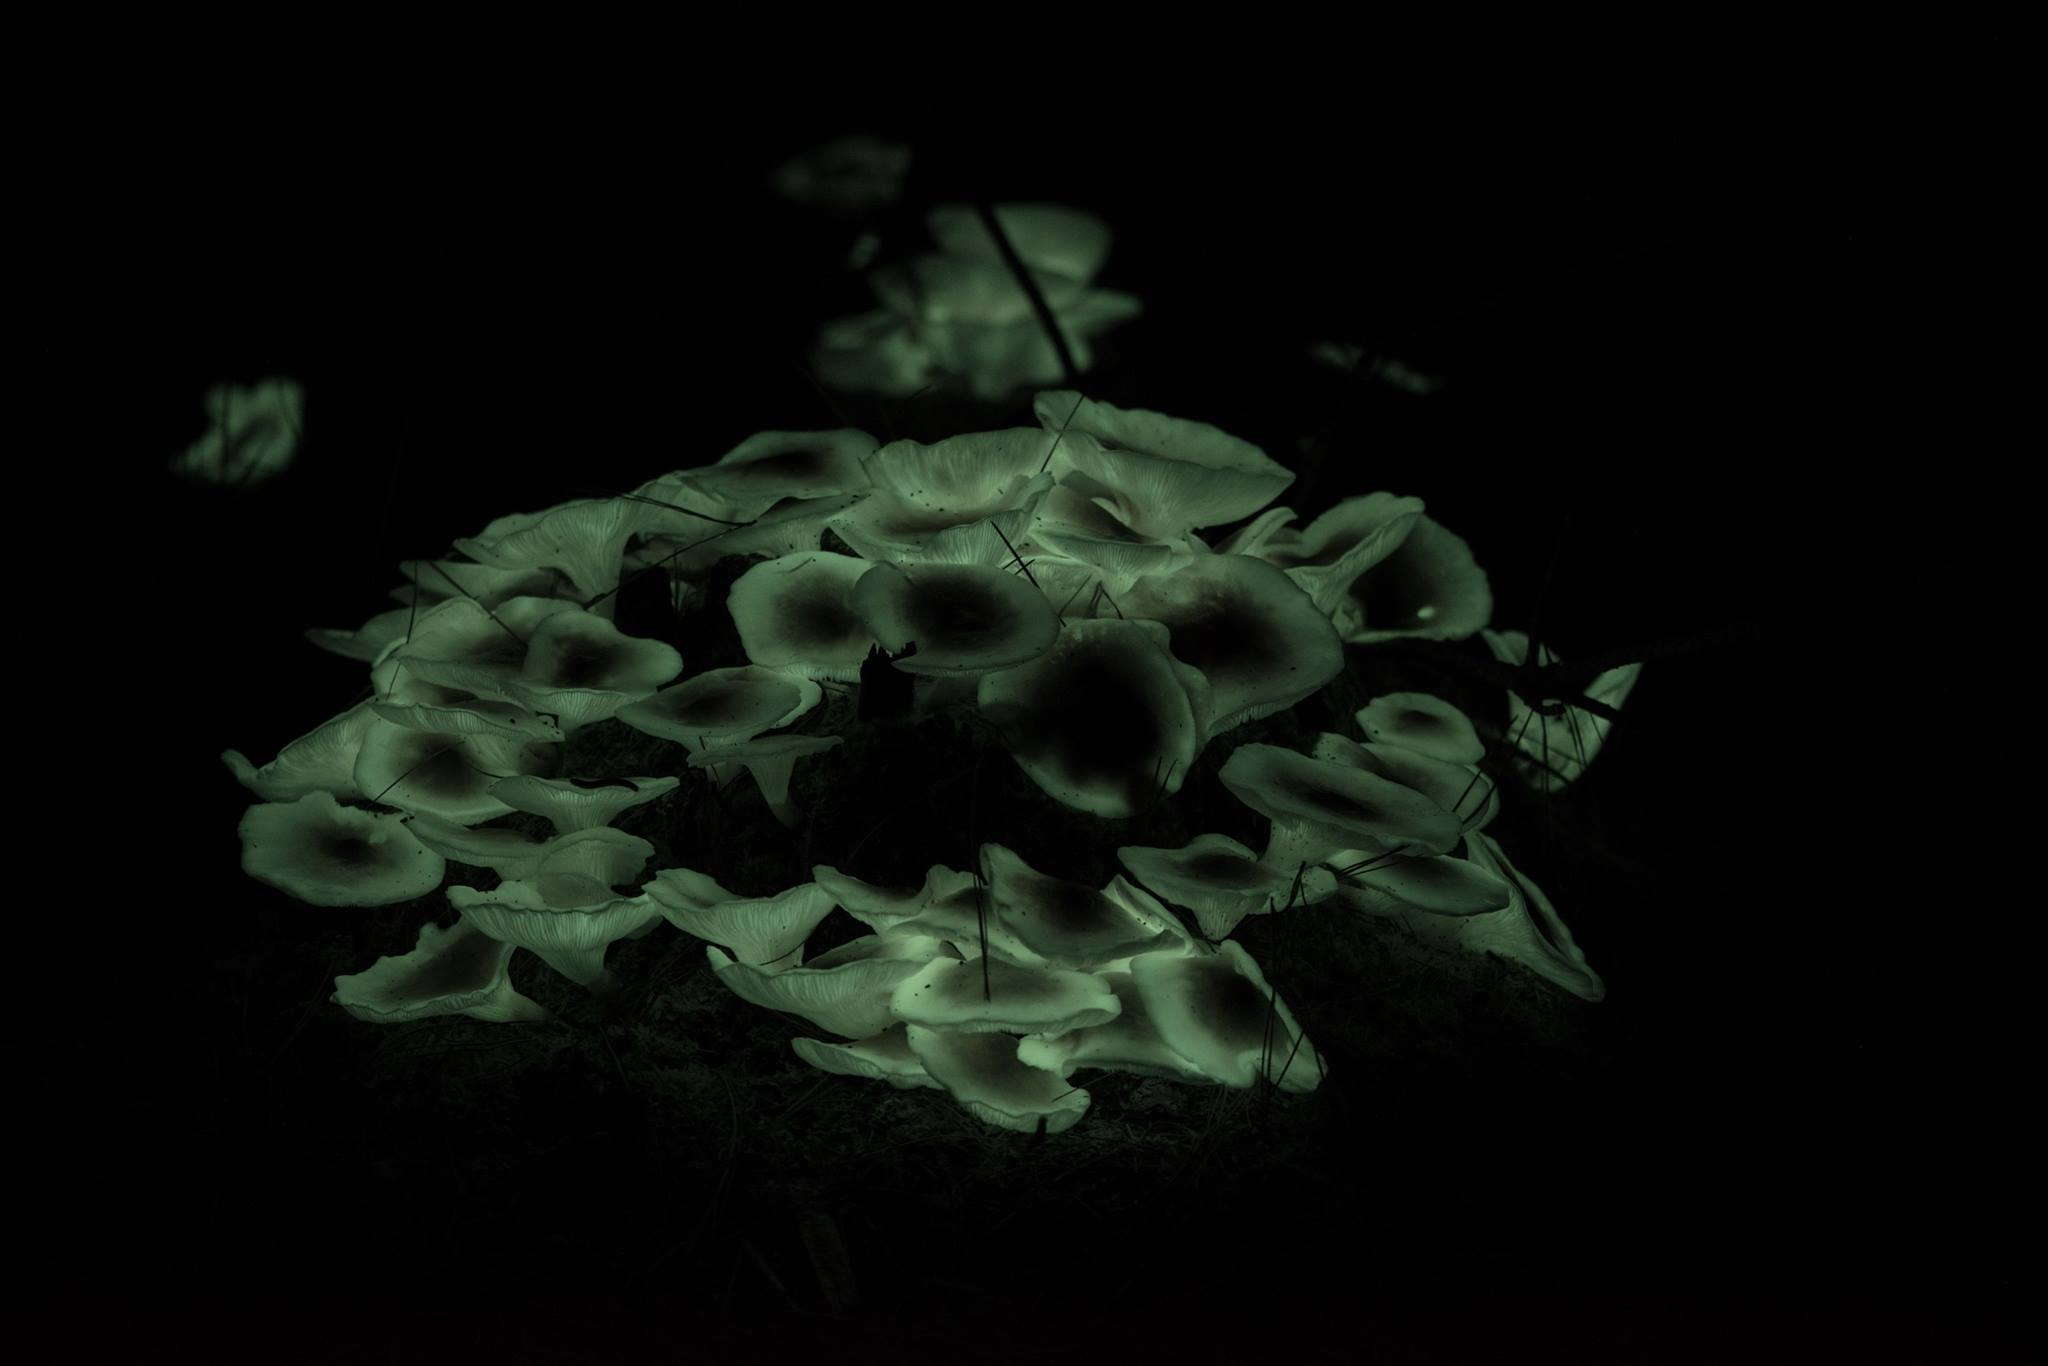 Photo by Ockert La Rou - Photograph of Ghost Mushroom as seen with the naked eye.